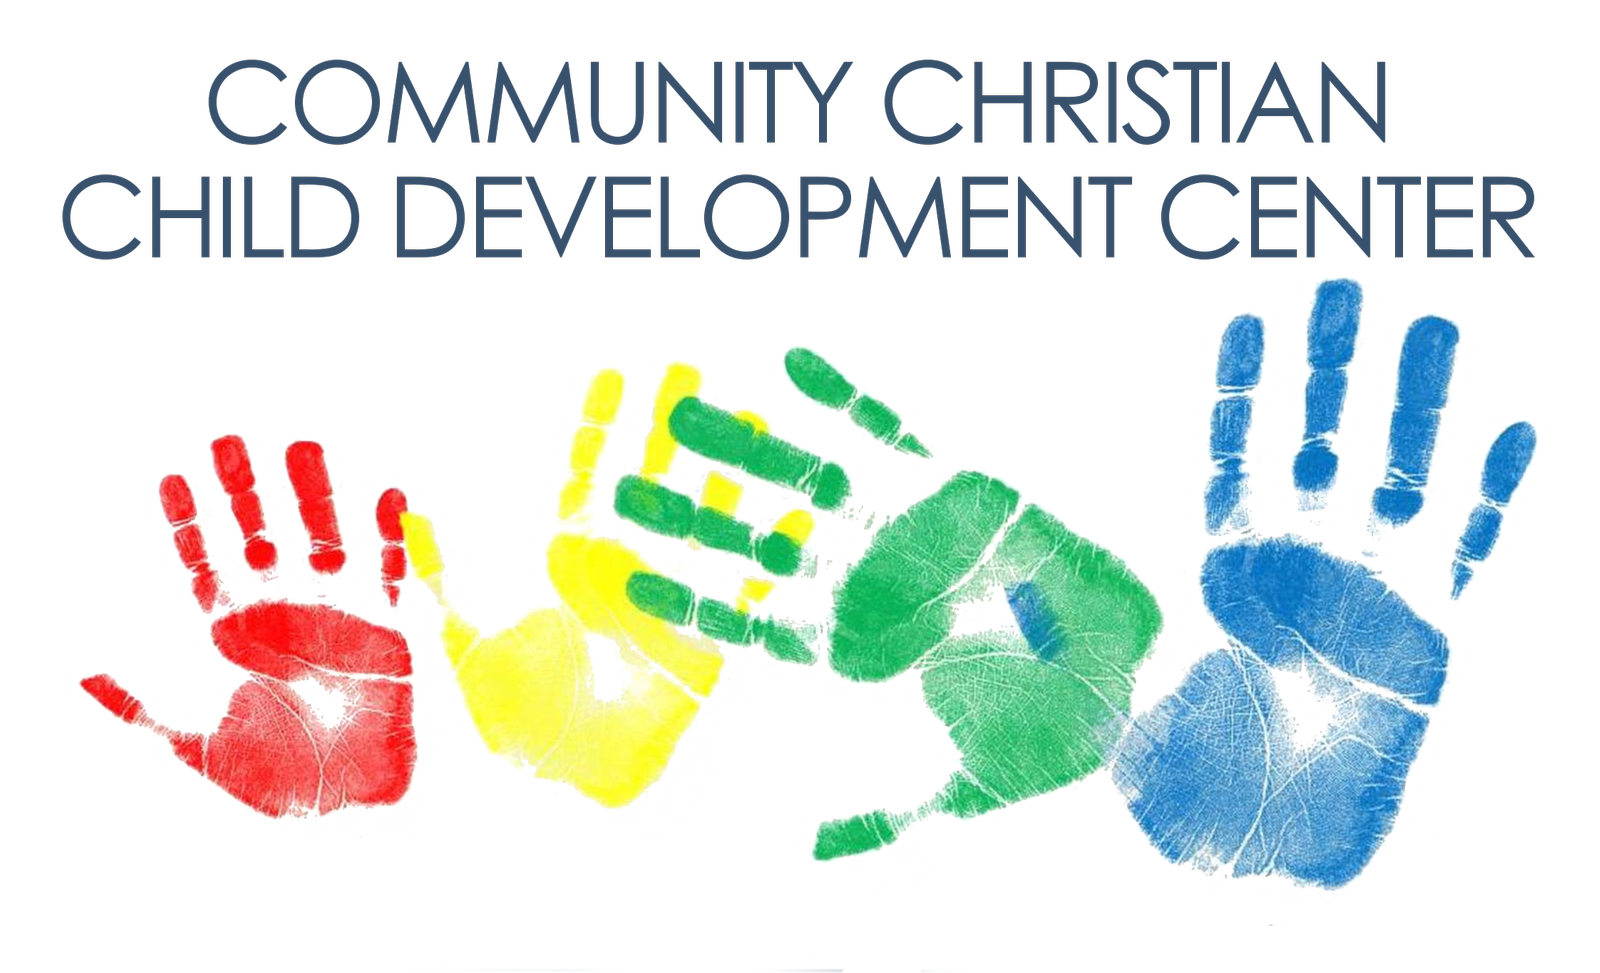 Community Christian Child Development Center